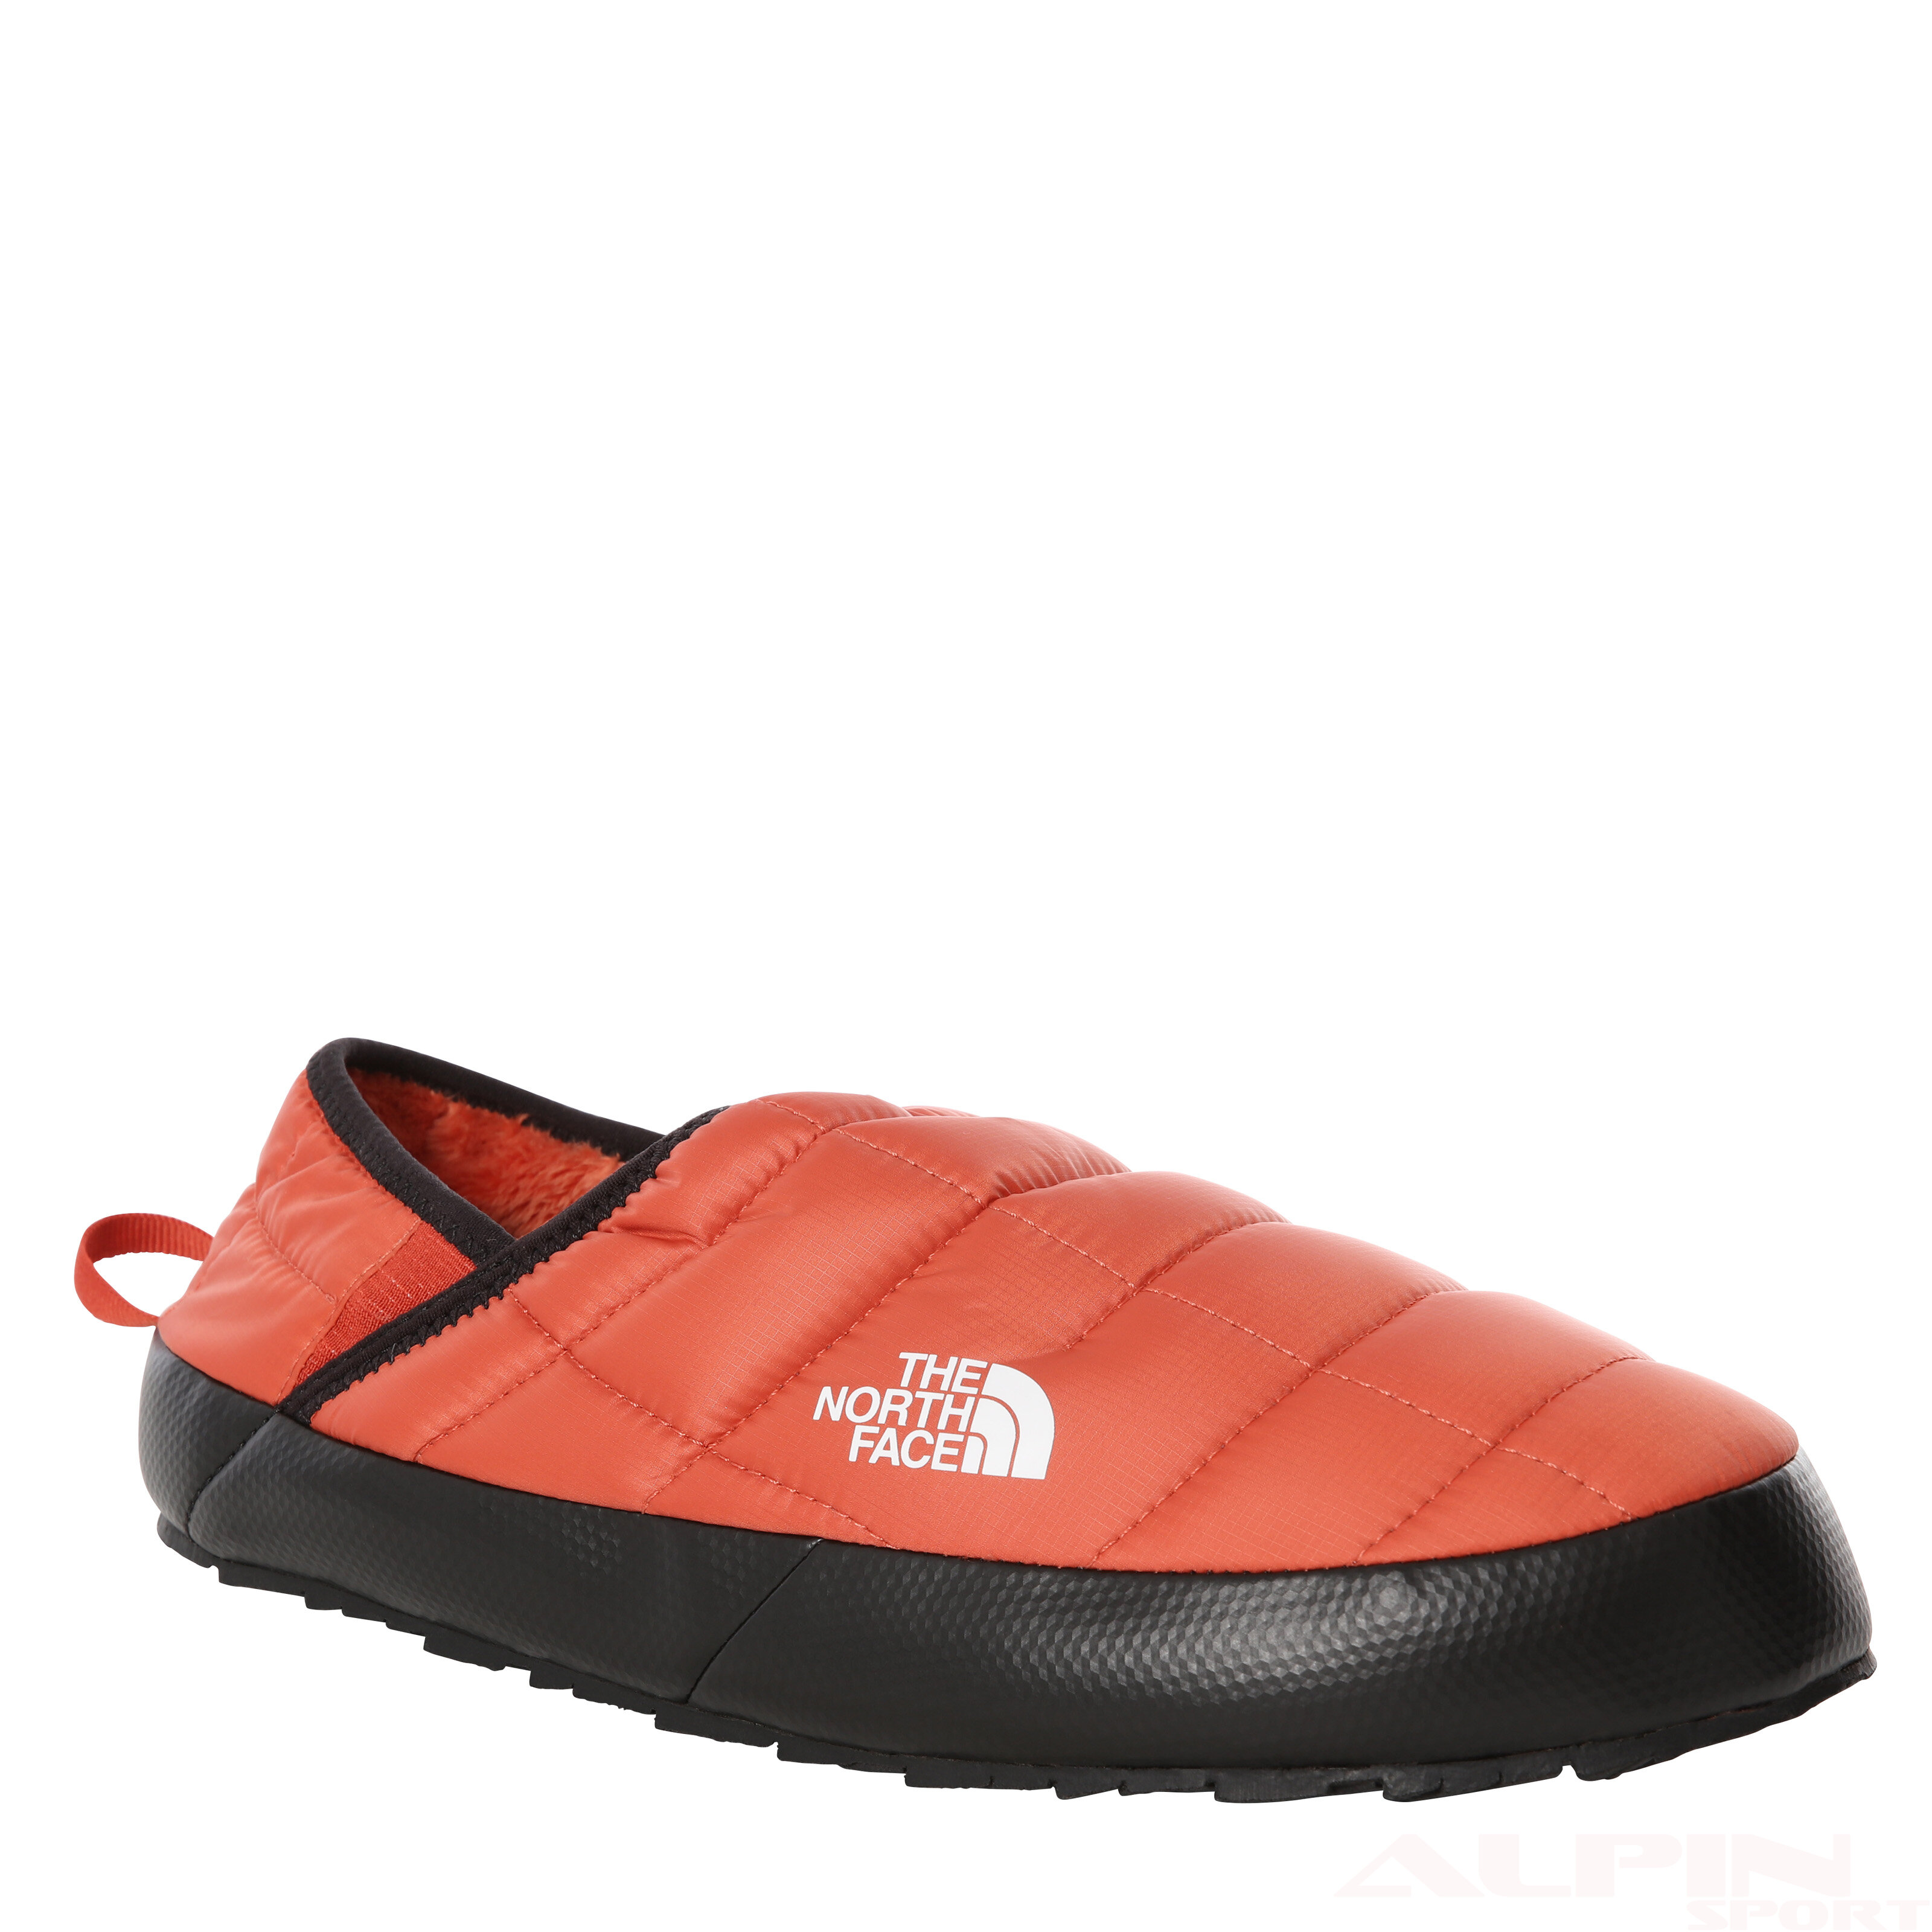 Buty męskie THE NORTH FACE Thermoball Traction Mule V 3UZN_31L_ALT4